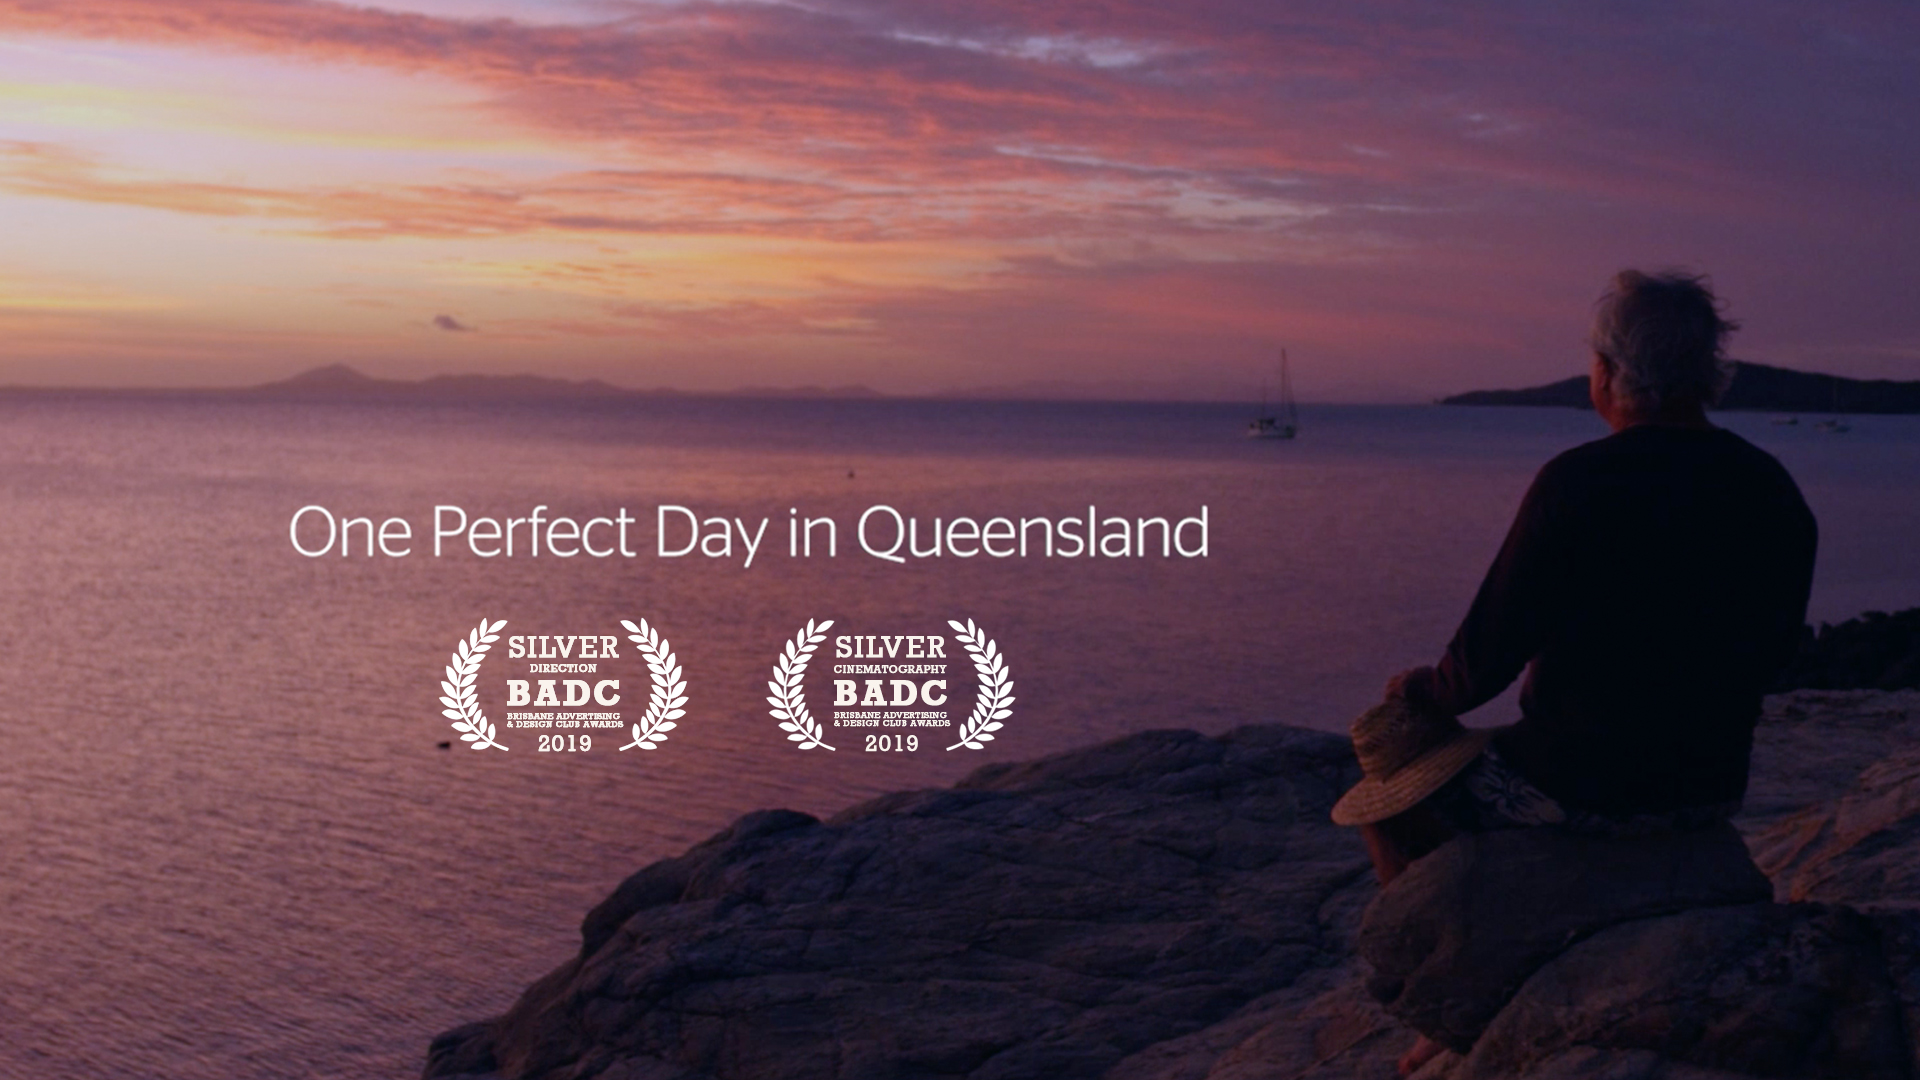 One perfect day in Queensland